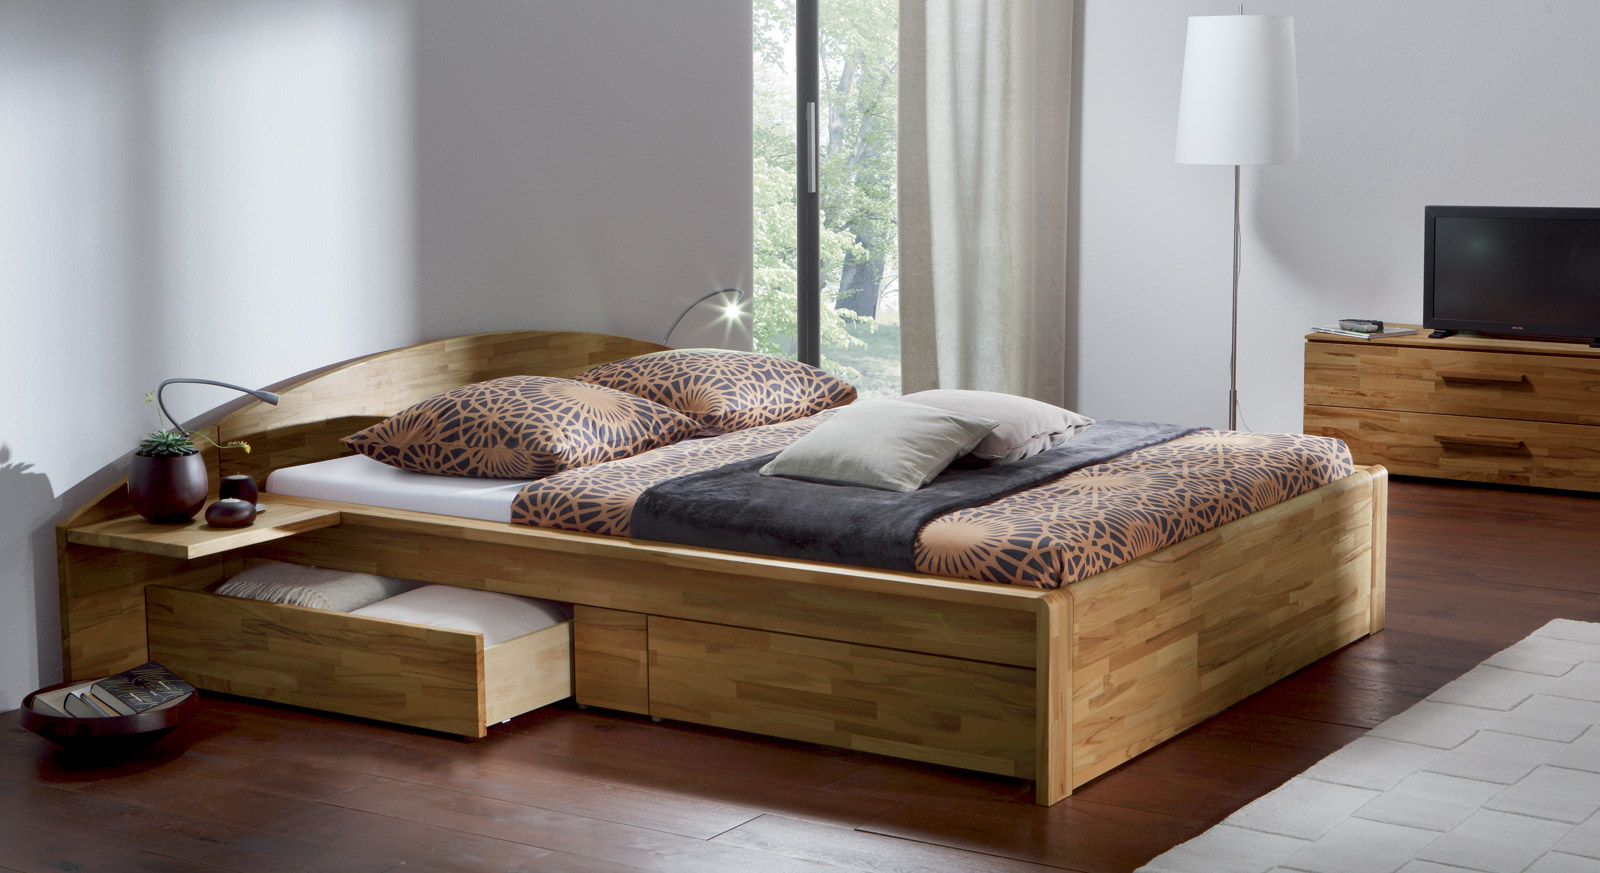 doppelbett weis beste bildideen zu hause design. Black Bedroom Furniture Sets. Home Design Ideas